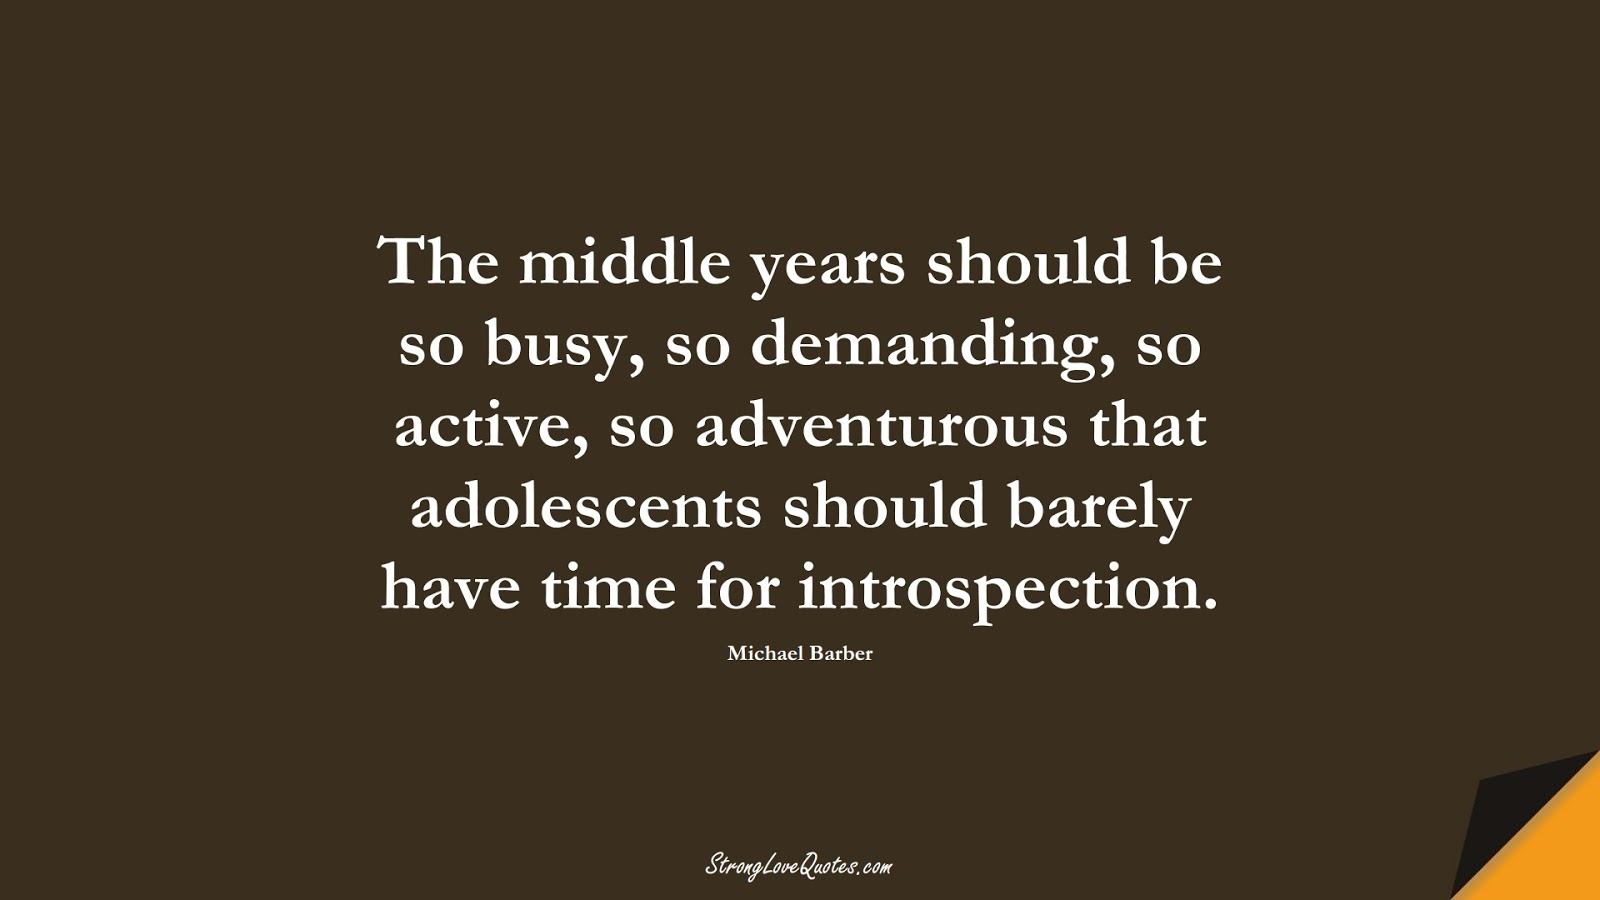 The middle years should be so busy, so demanding, so active, so adventurous that adolescents should barely have time for introspection. (Michael Barber);  #EducationQuotes